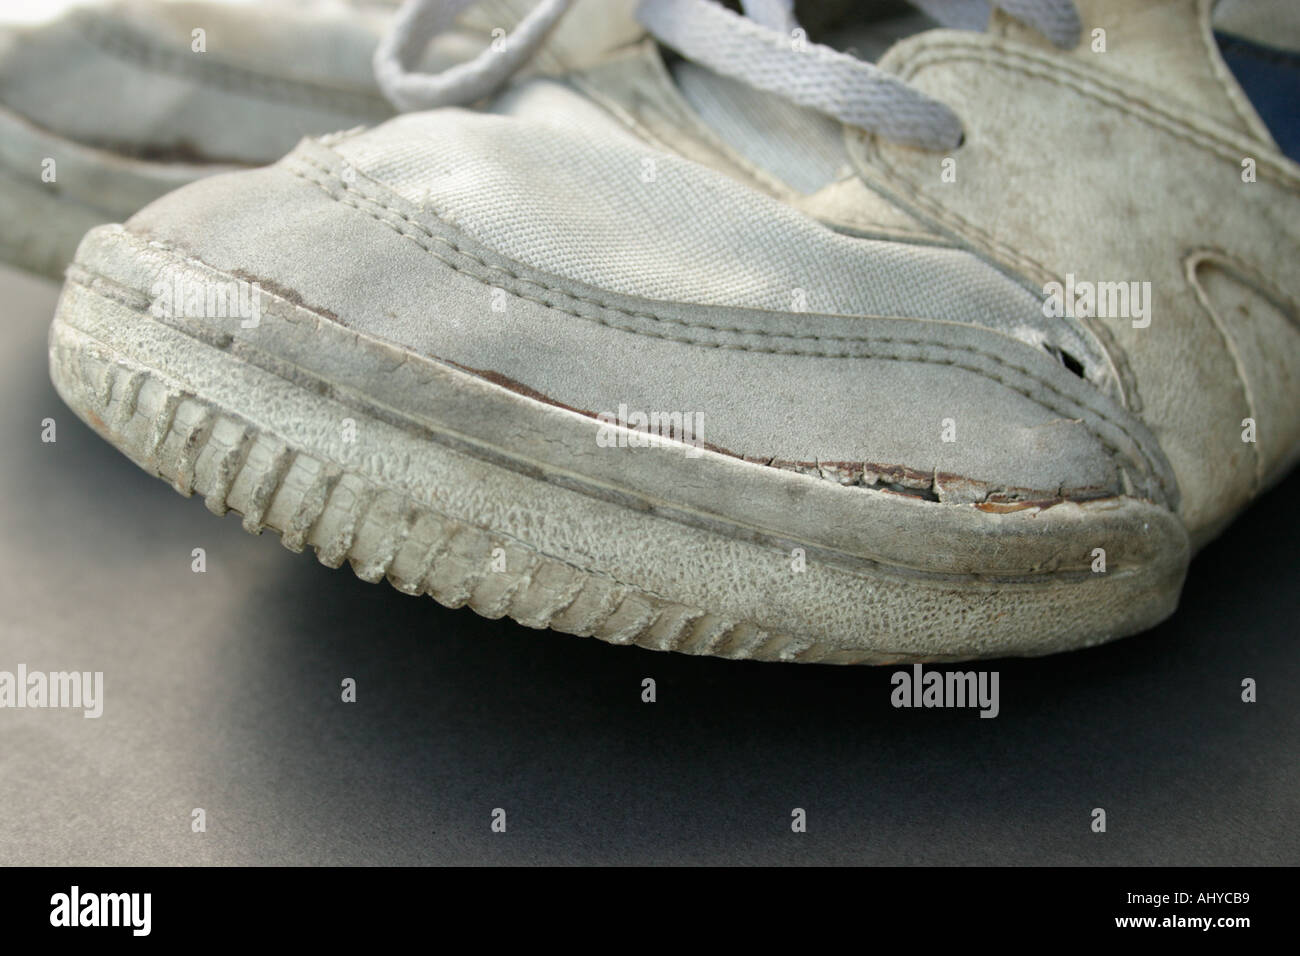 closeup of a pair of dirty old worn sneakers or running shoes Concept comfort well used durability - Stock Image